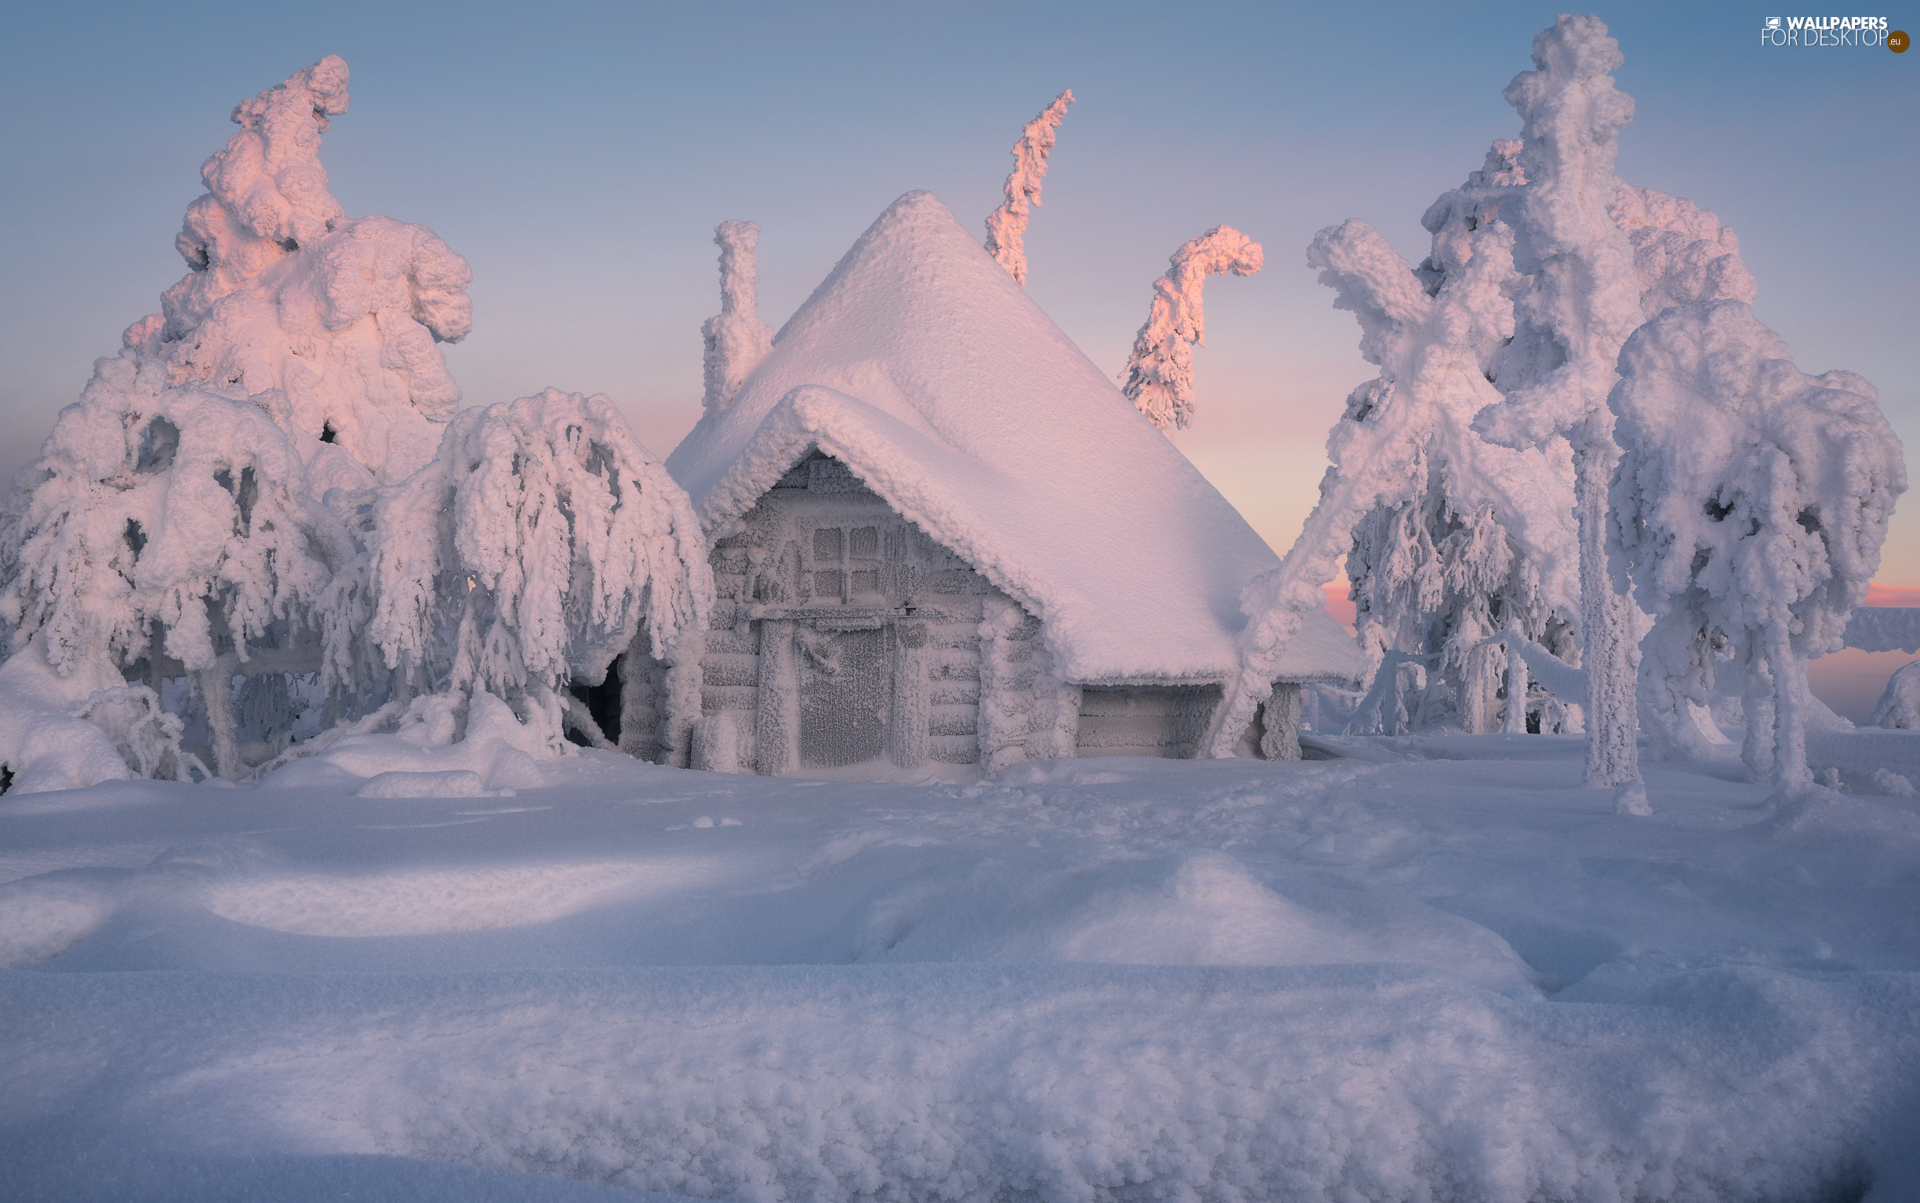 house, winter, viewes, snow, trees, snowy